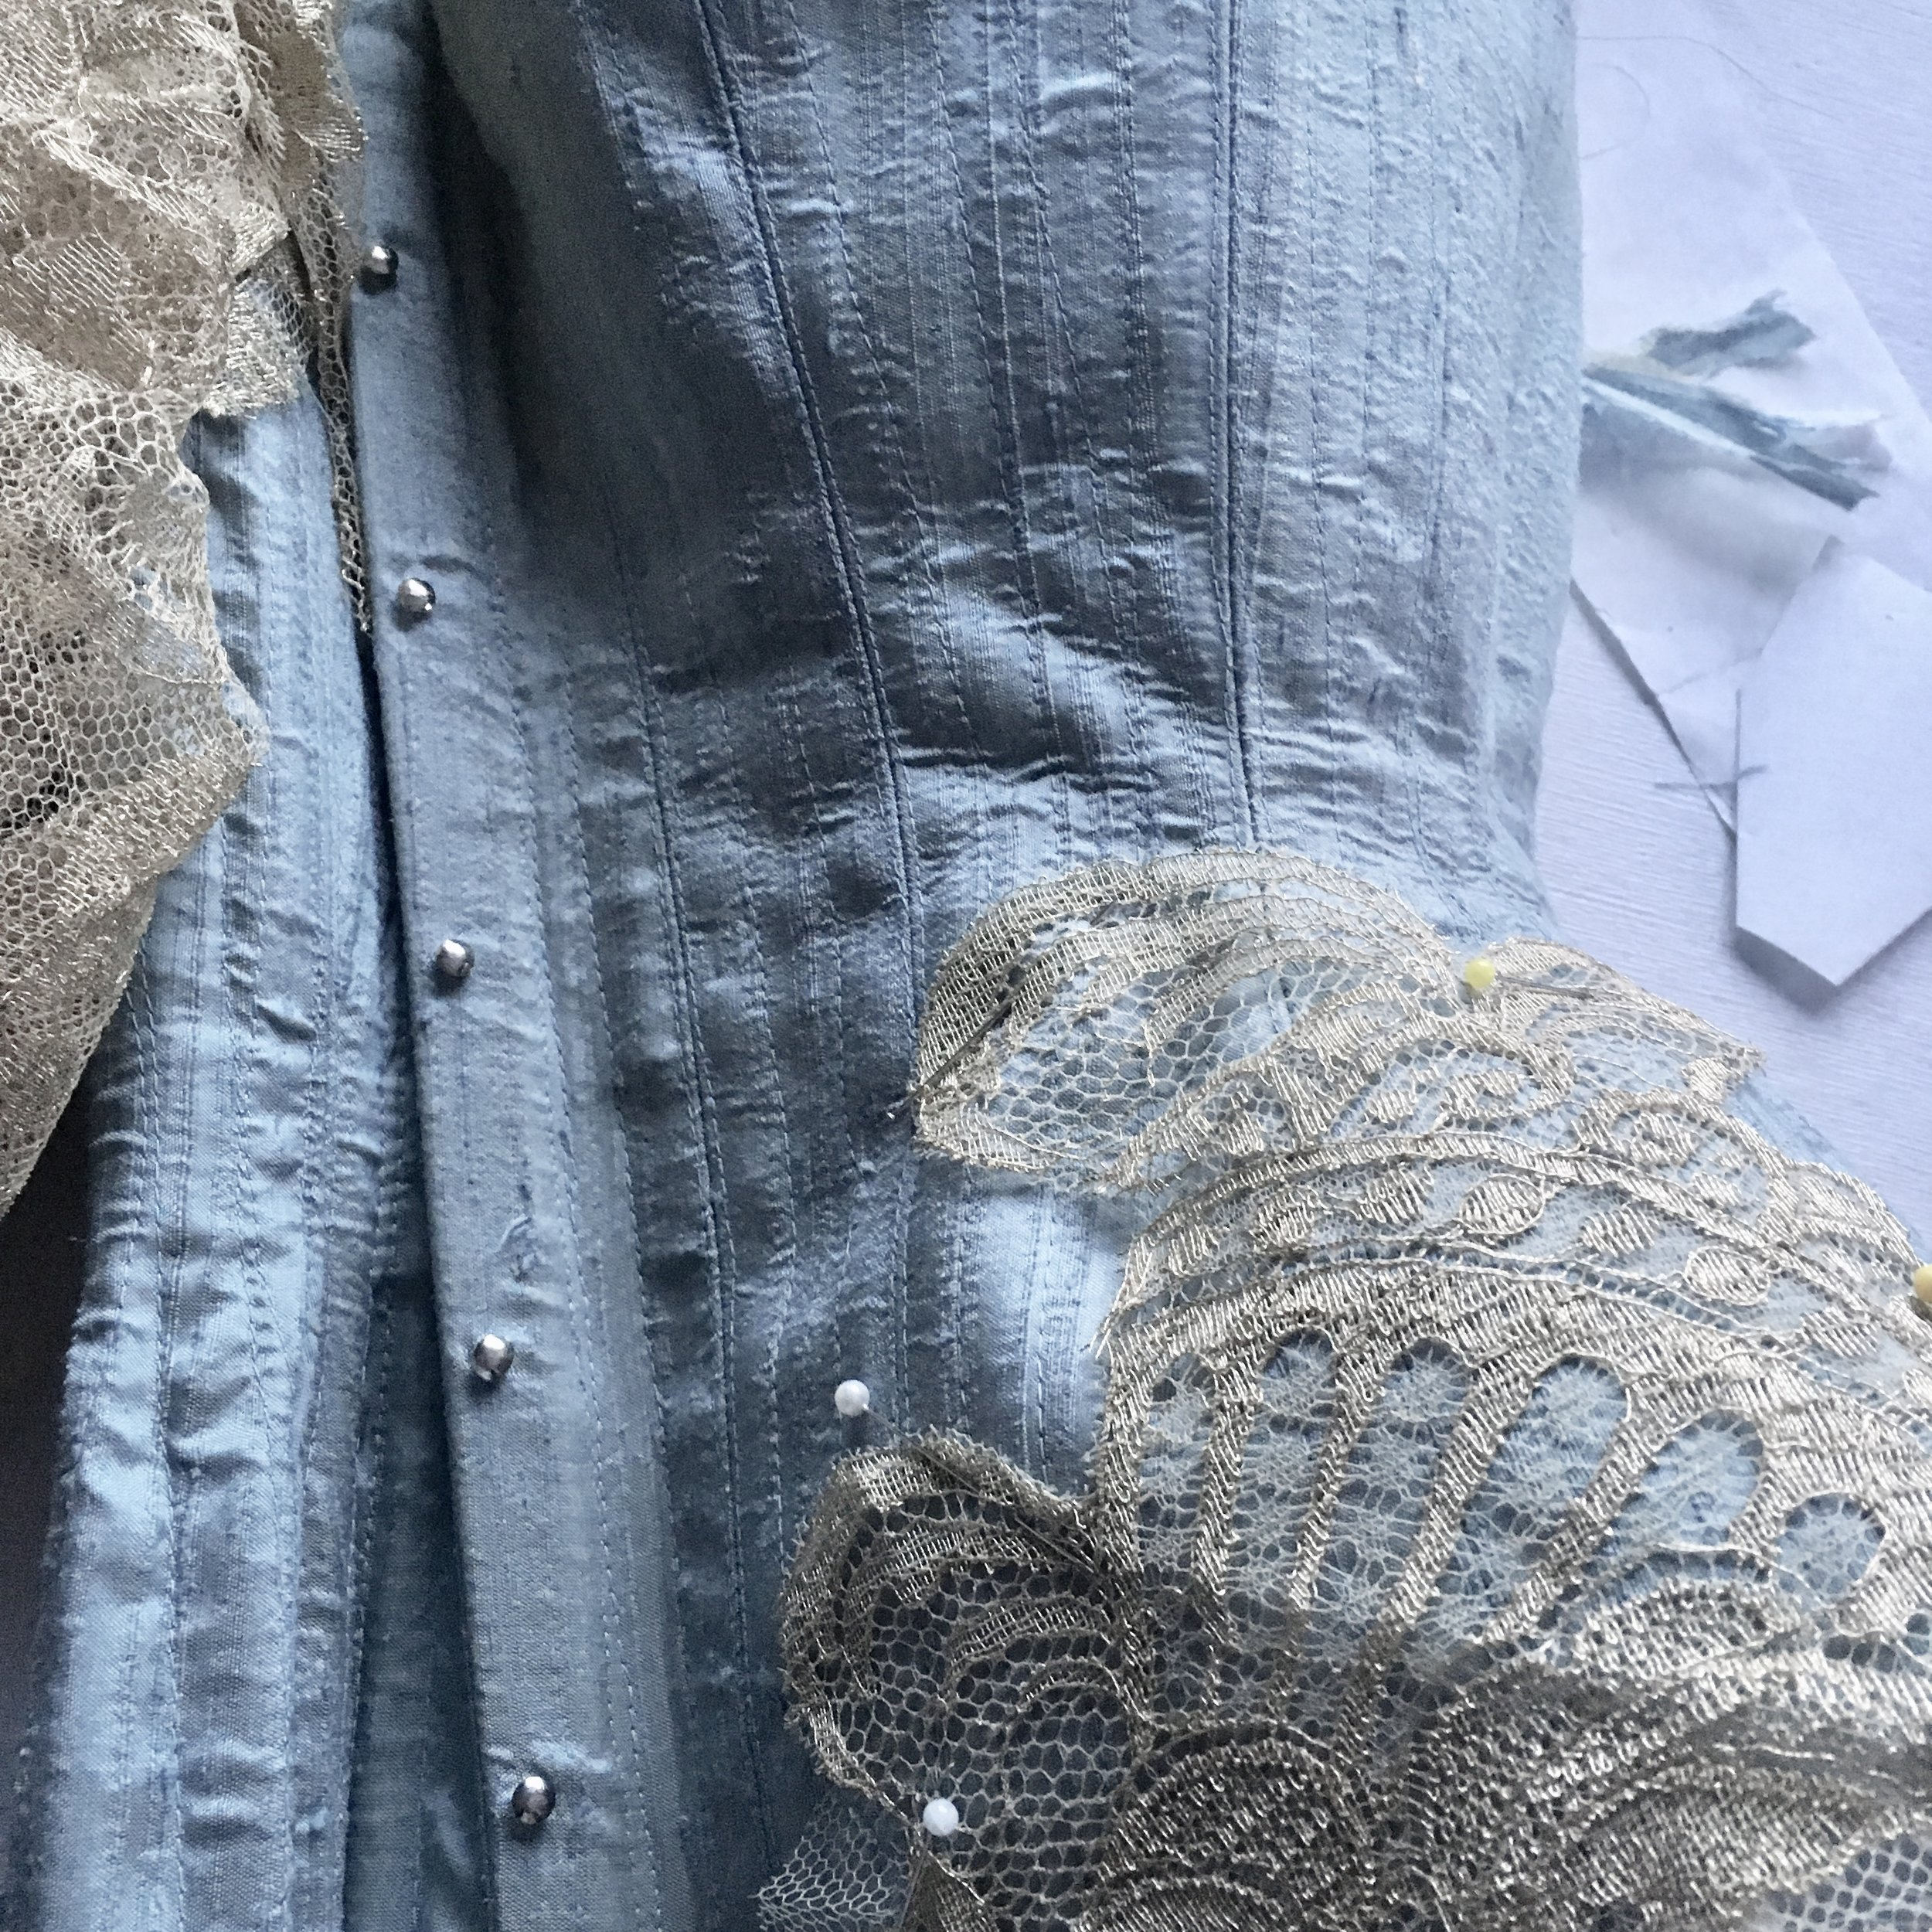 As you can see, on the bonded side of the corset, there are plenty of unsightly bubbles and wrinkles, which I am still frustrated by. Further research and experimentation will be needed on methods of fusing fabrics.